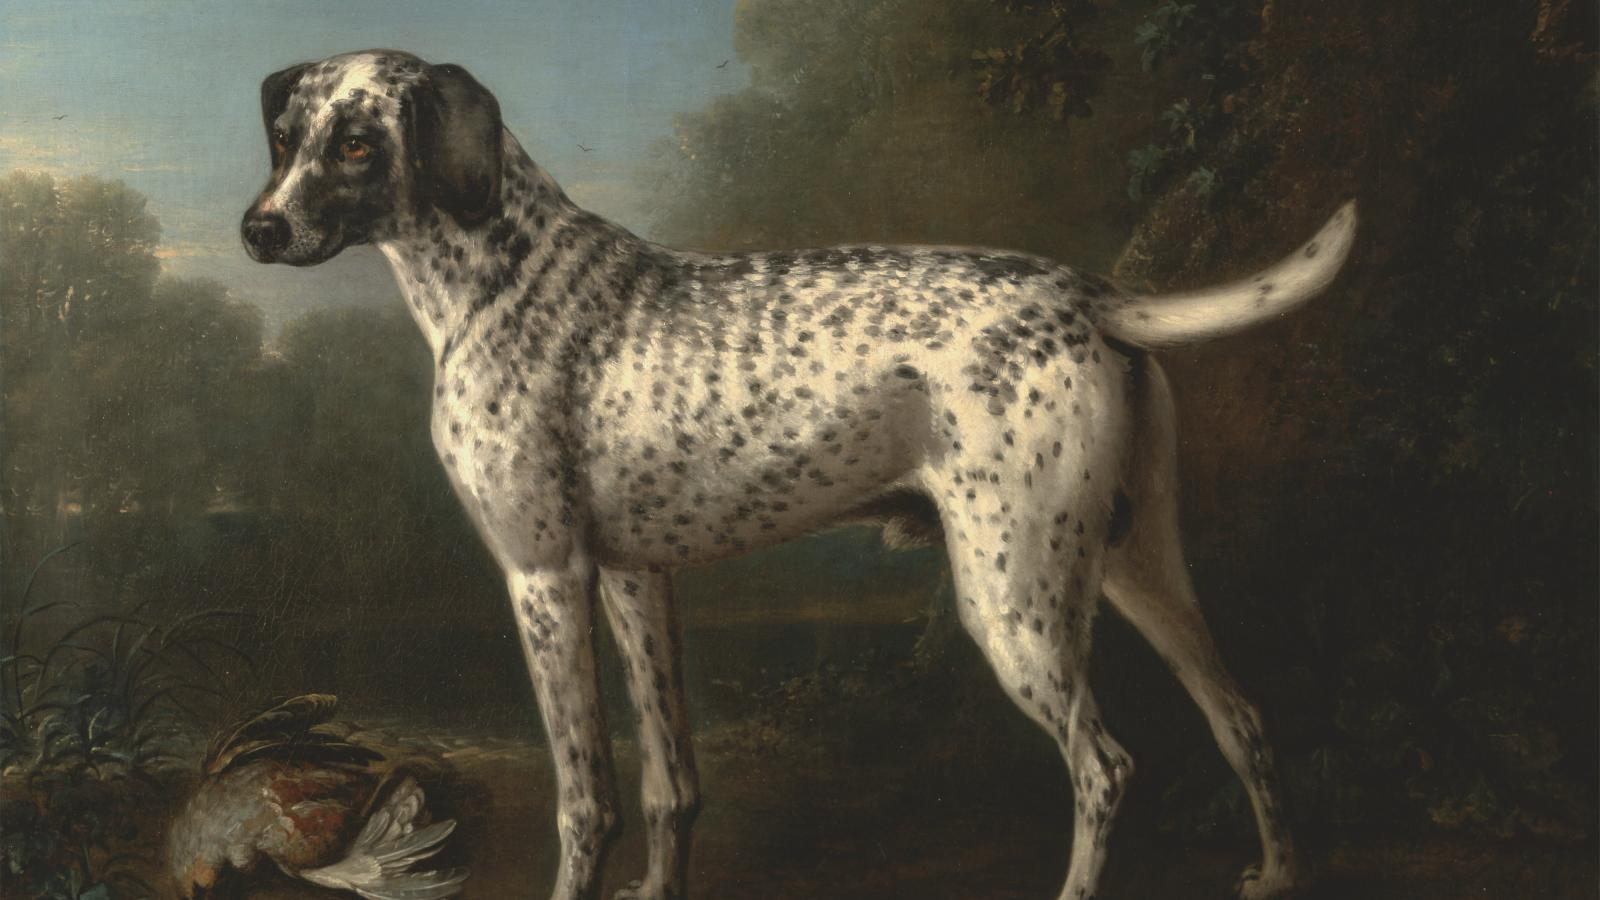 Diamond Collars And Oil Portraits The Luxurious History Of Dogs In India